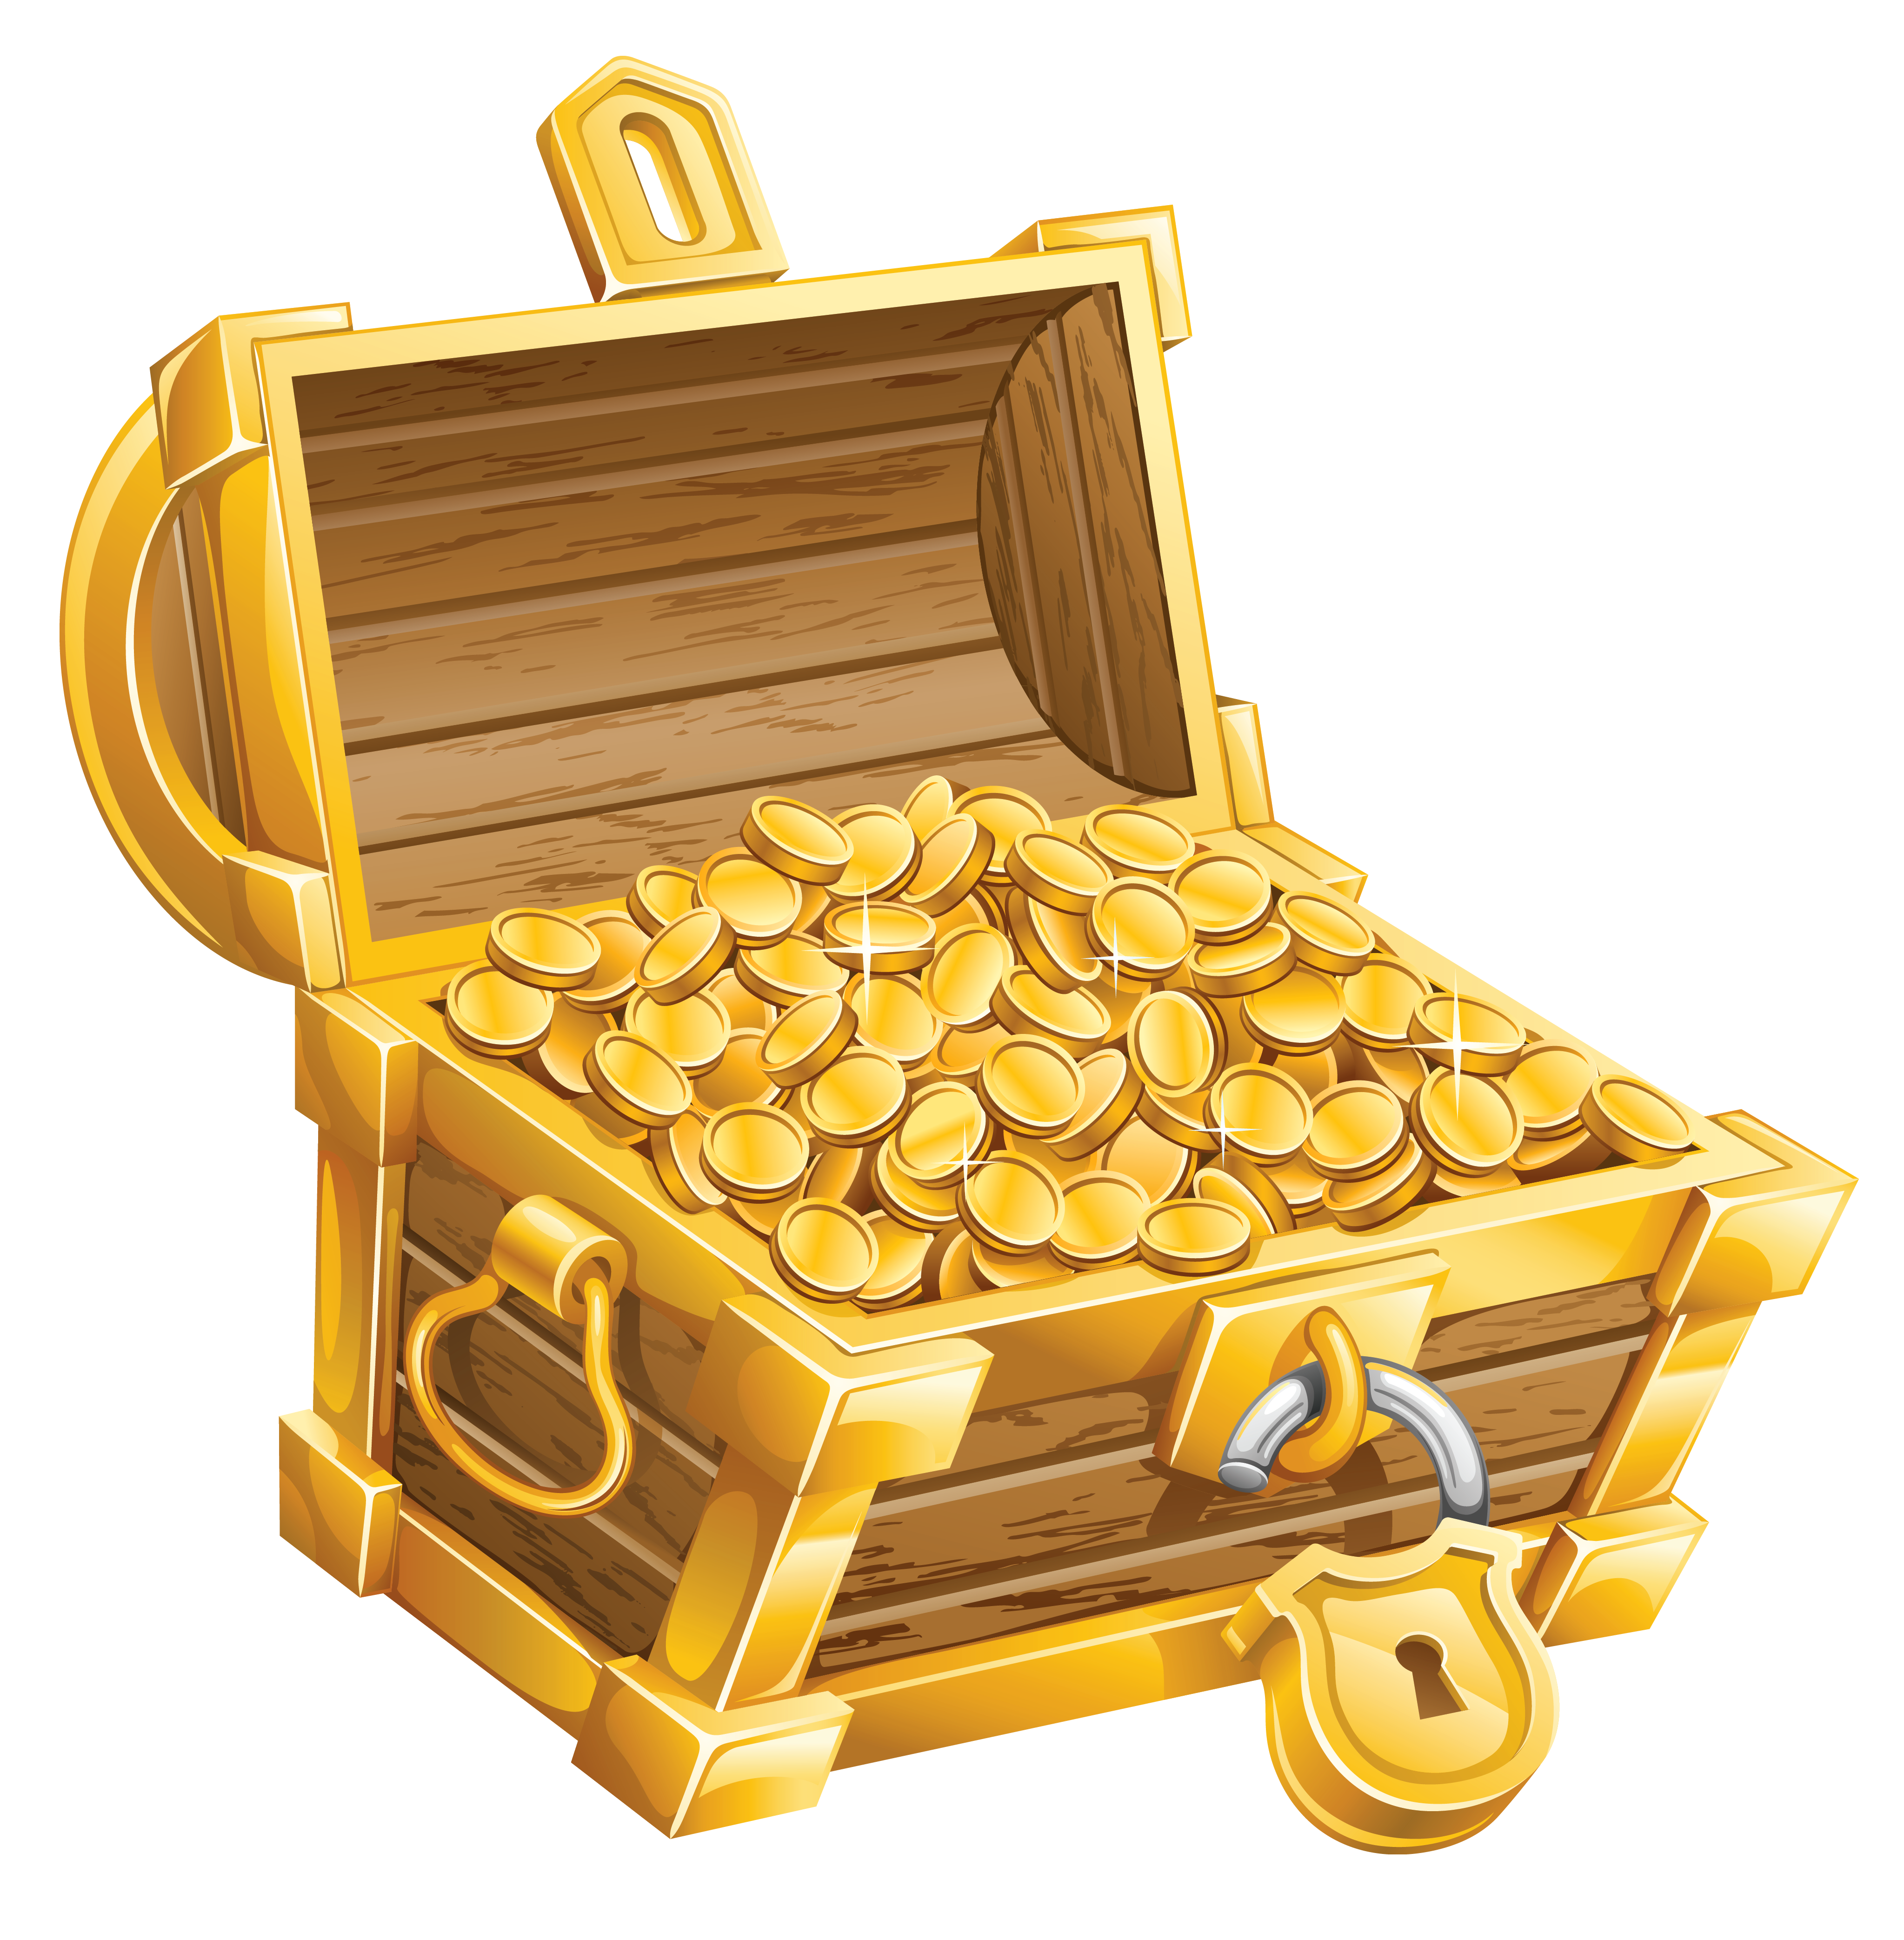 Pirate money clipart png library download Treasure Chest PNG Clipart Picture   Gallery Yopriceville - High ... png library download